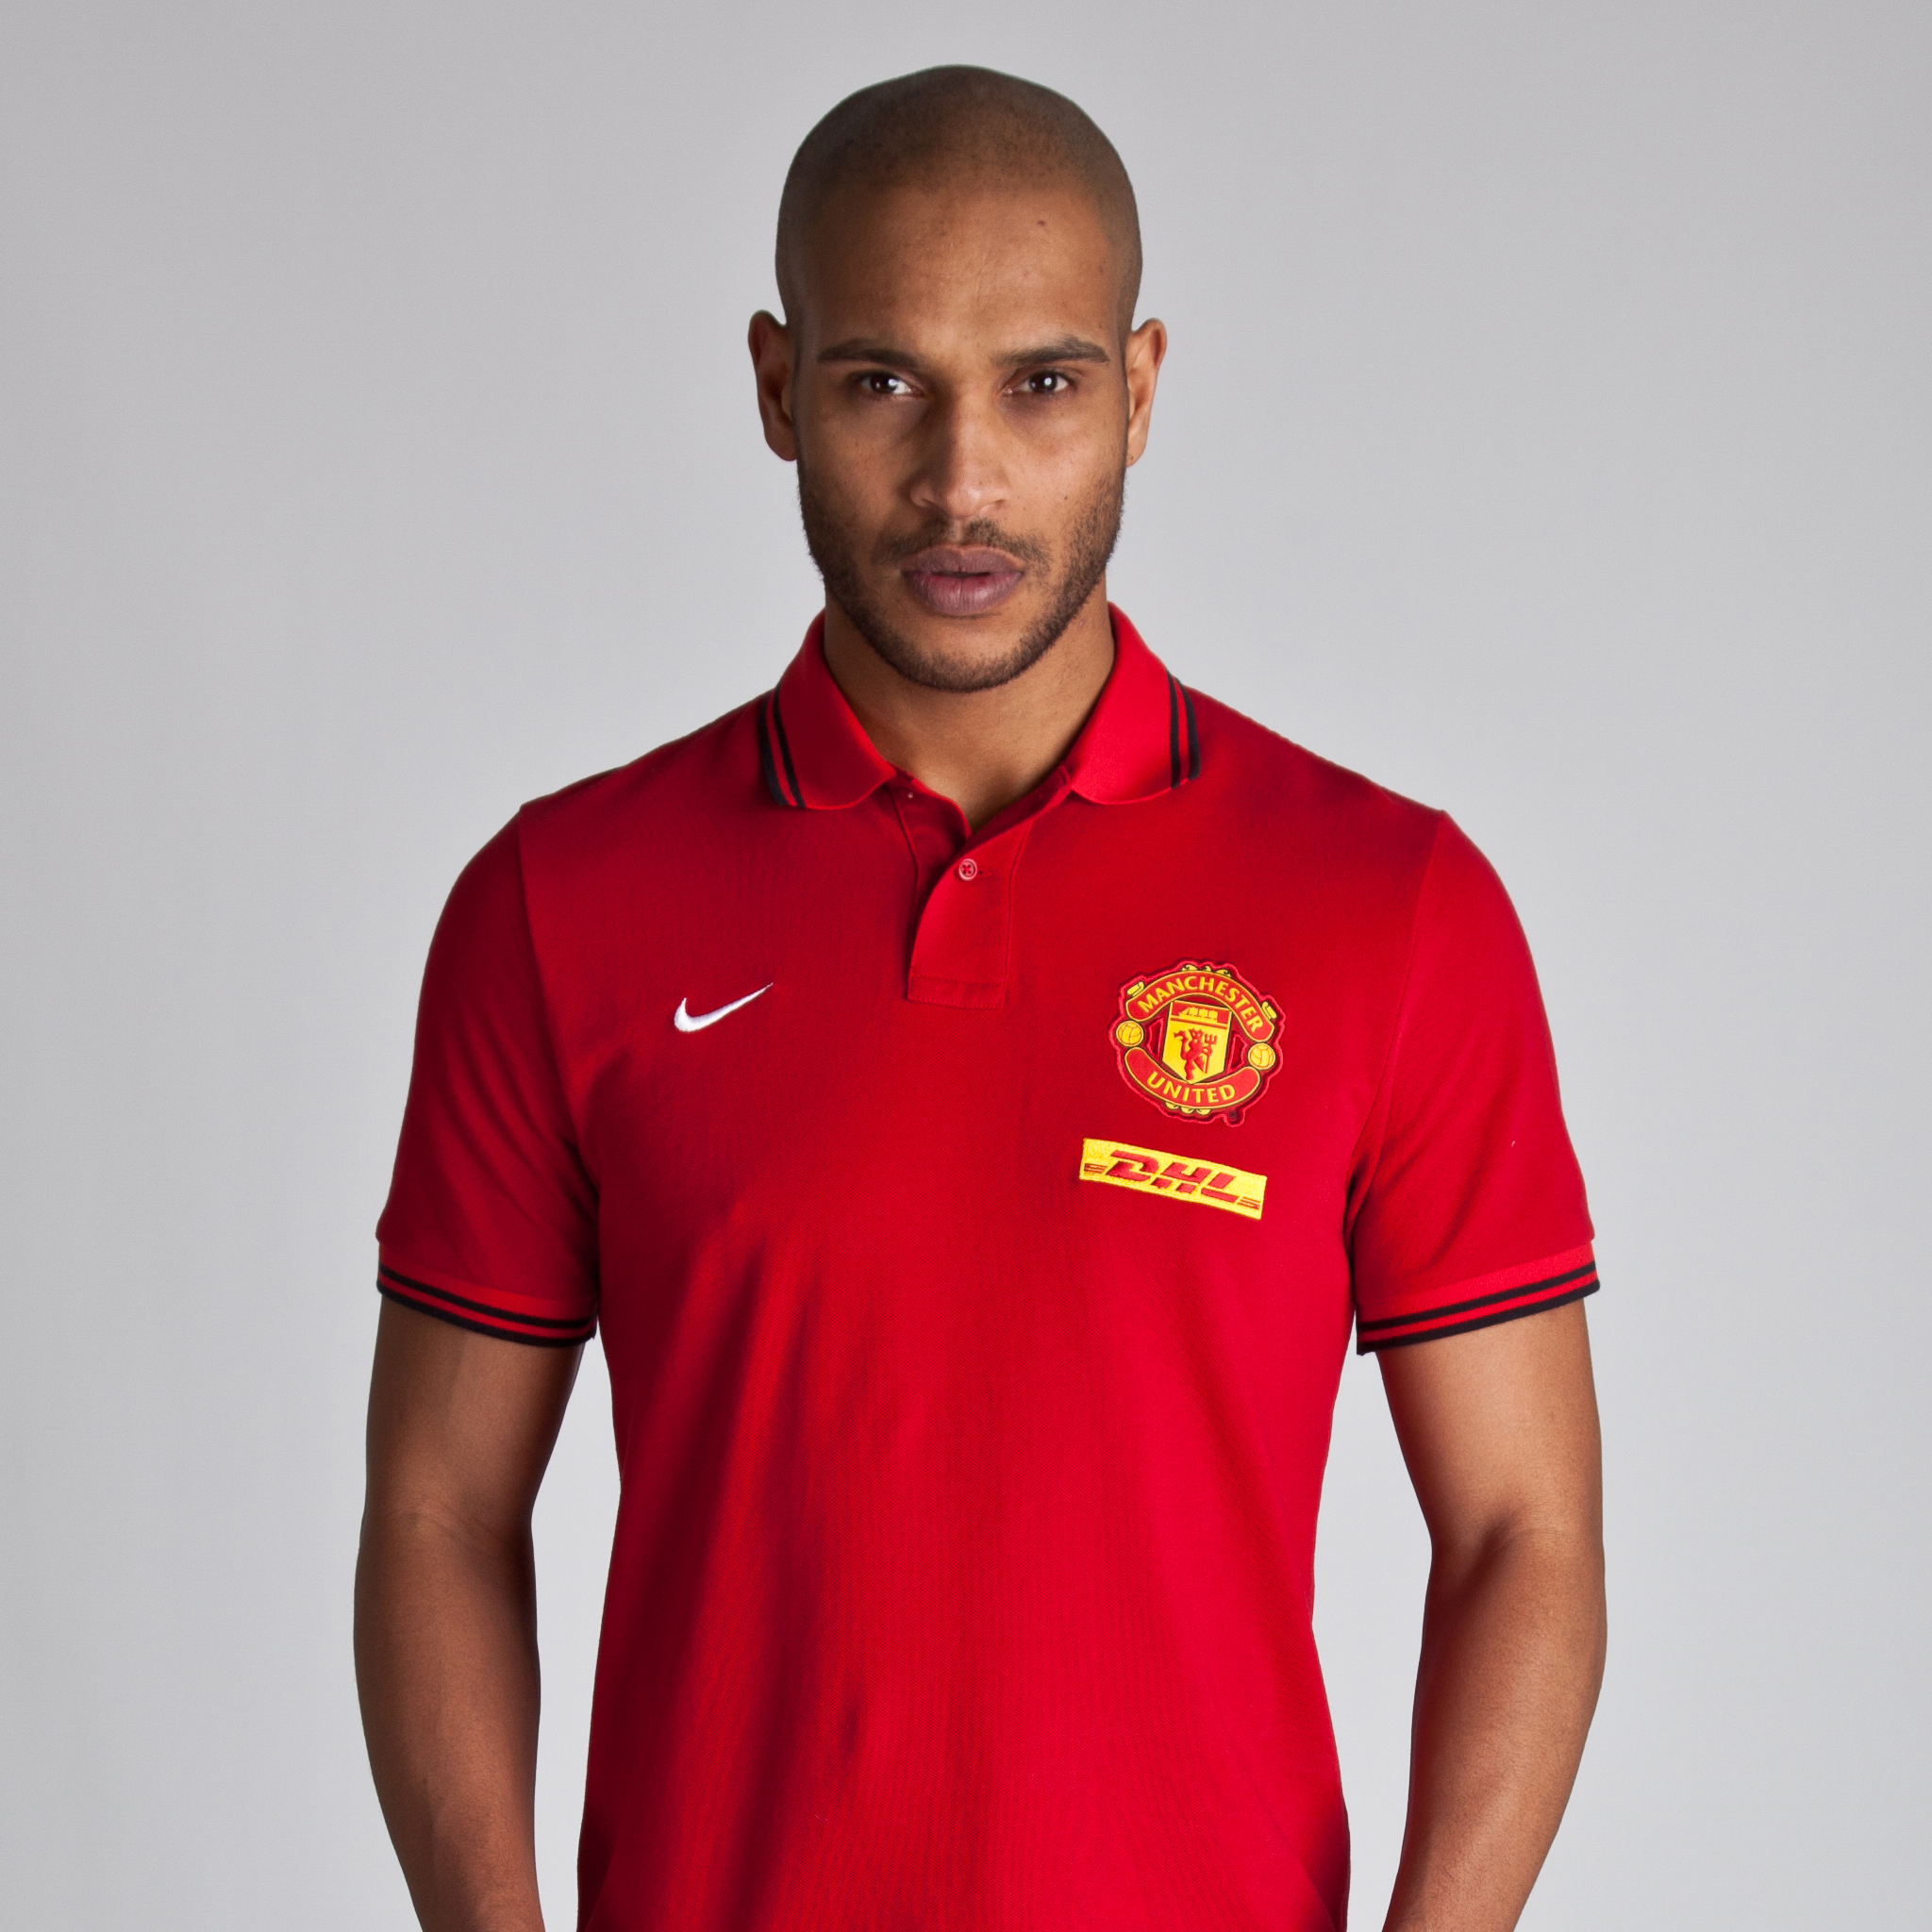 Manchester United Authentic Grandslam Polo - DHL - Gym Red/University Red/White